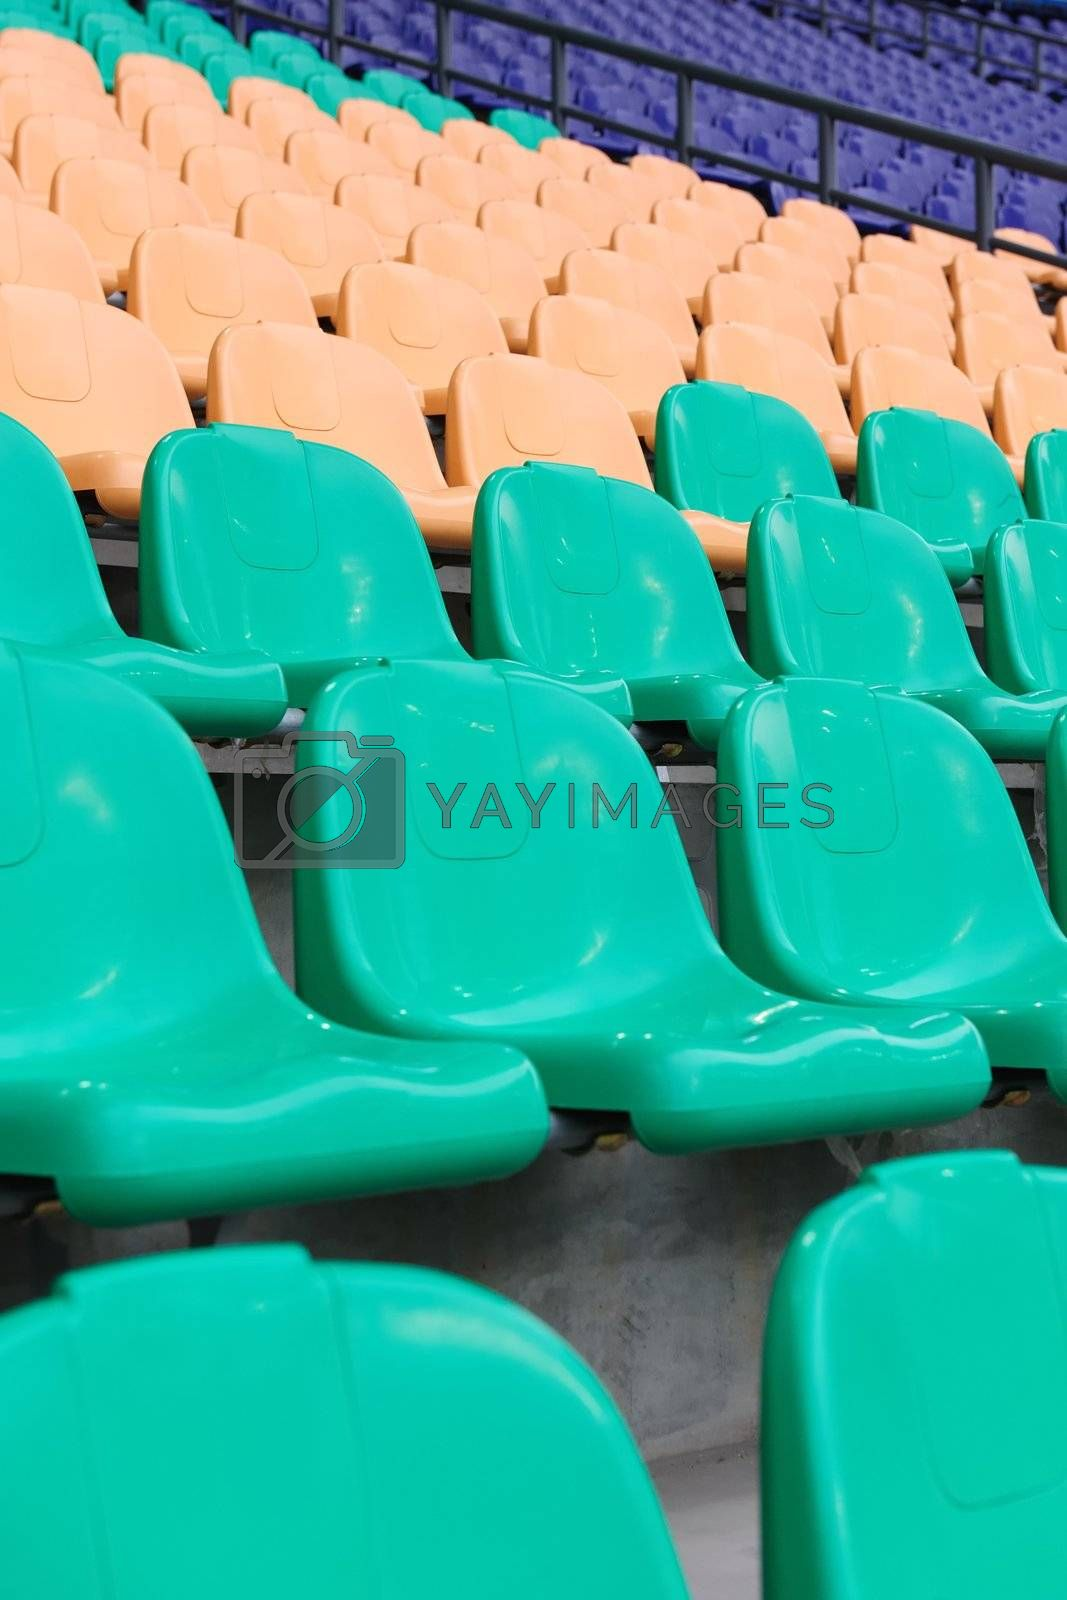 Chairs in the sports stadium